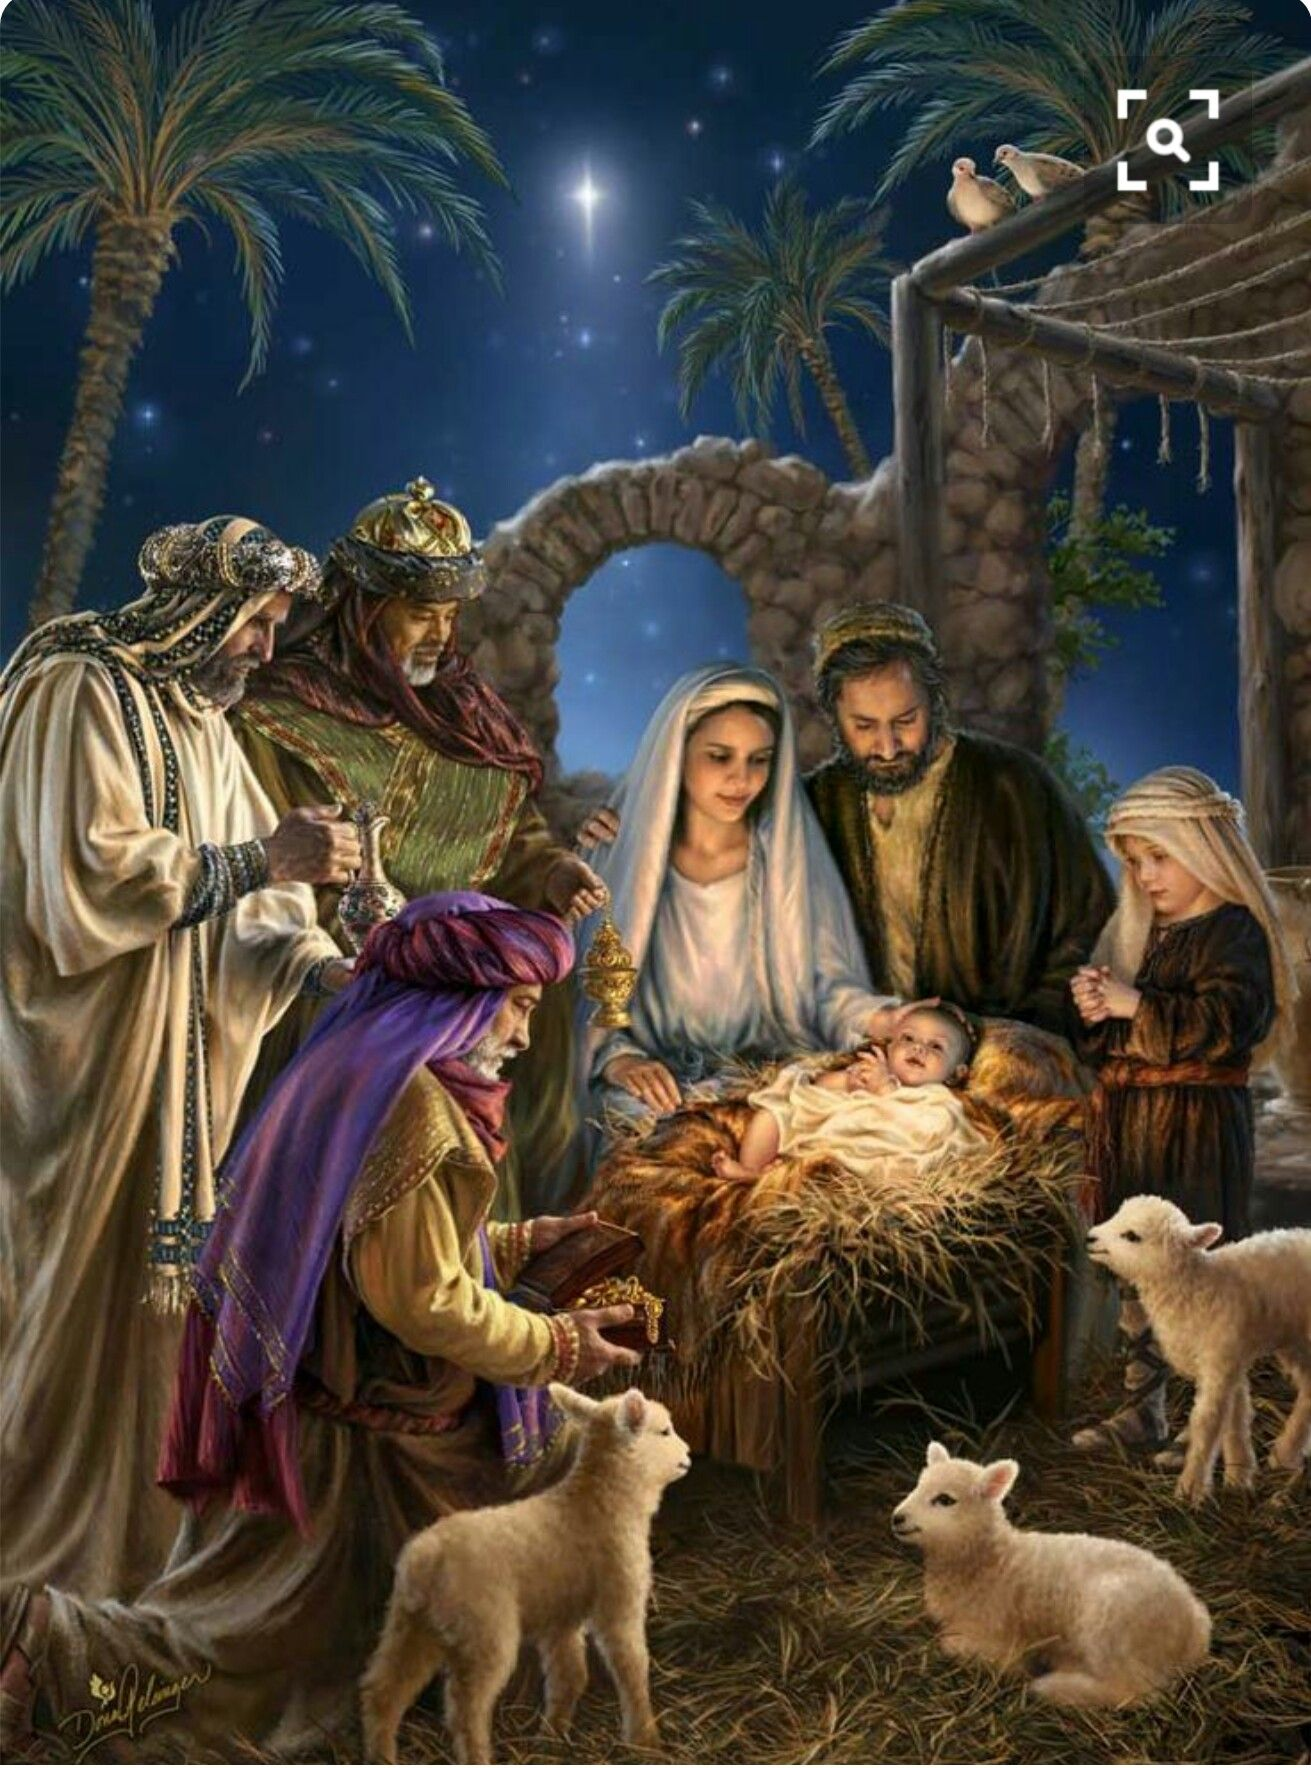 Wise Men found Jesus | Christmas scenes, Christmas ...